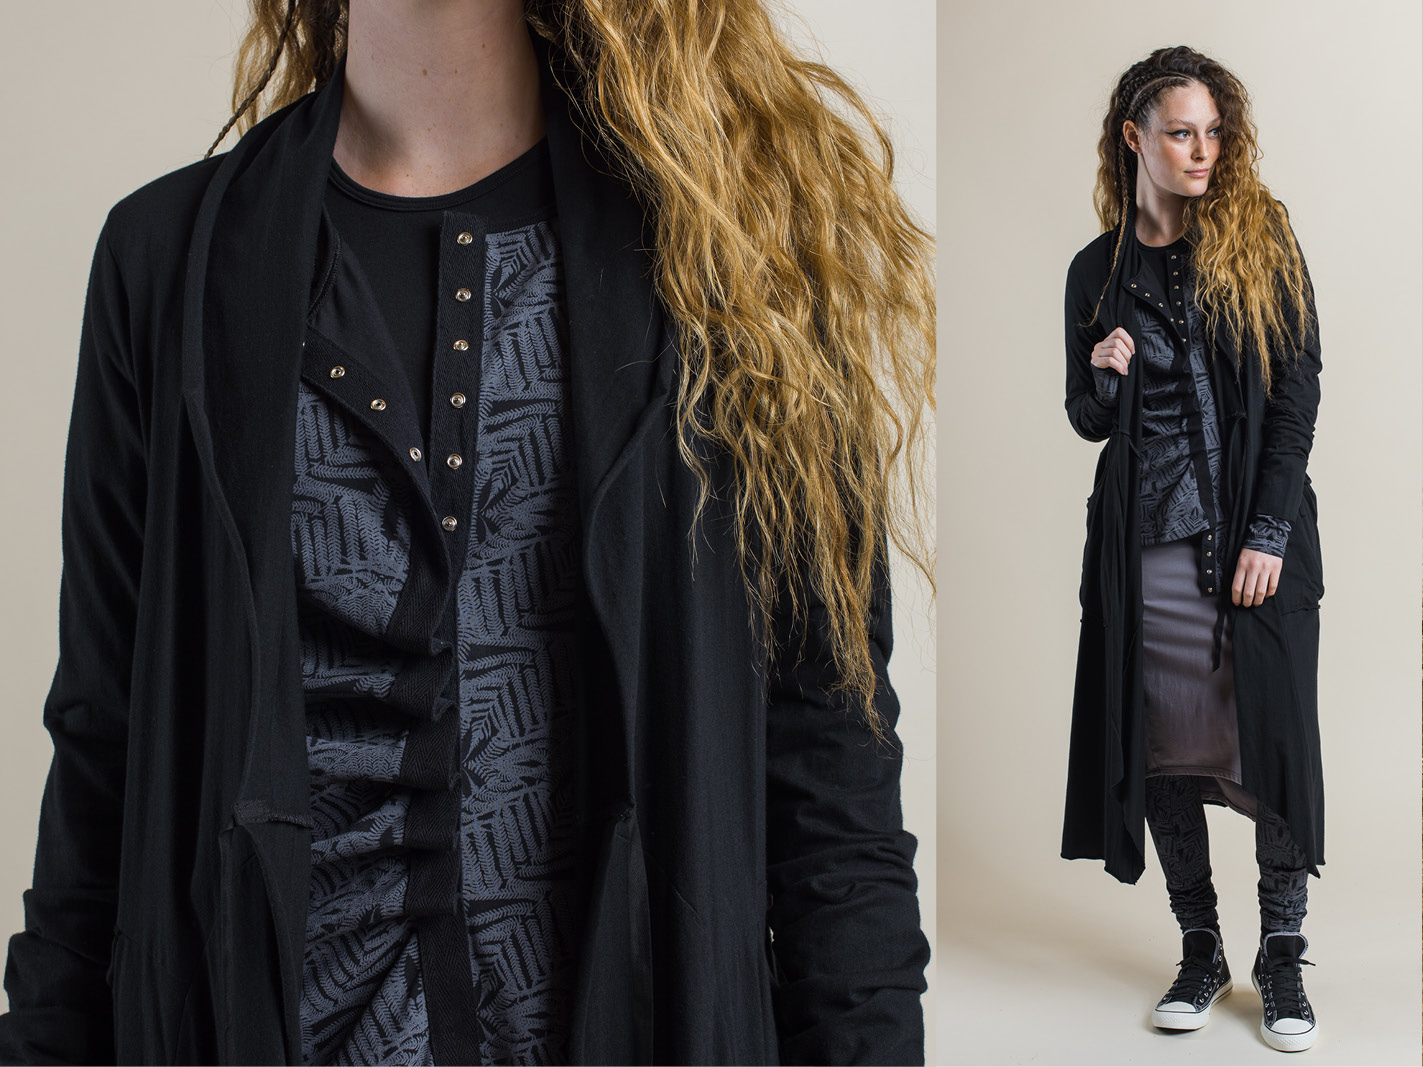 Annabel coat (black) over Camille long cardigan (shadow print), Tansy top (black), Fern print legging (shadow) and Jezabel skirt (dove)